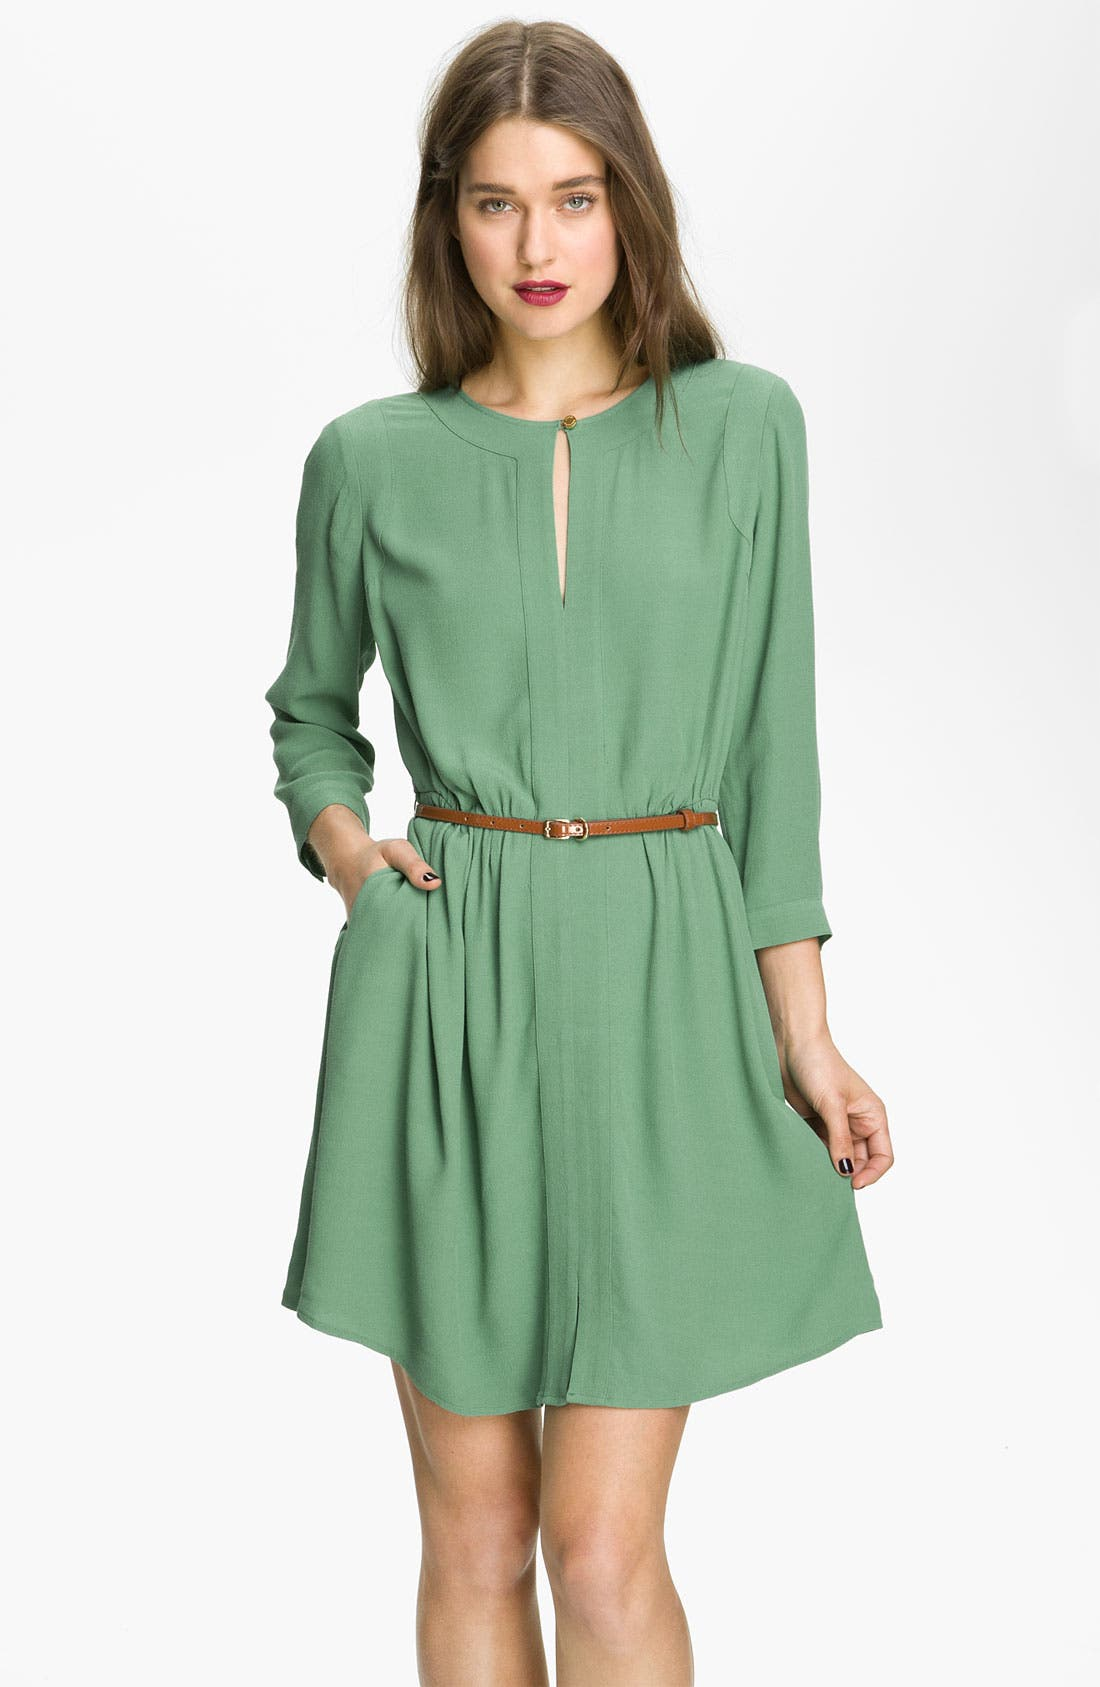 Alternate Image 1 Selected - Juicy Couture Belted Crepe Dress